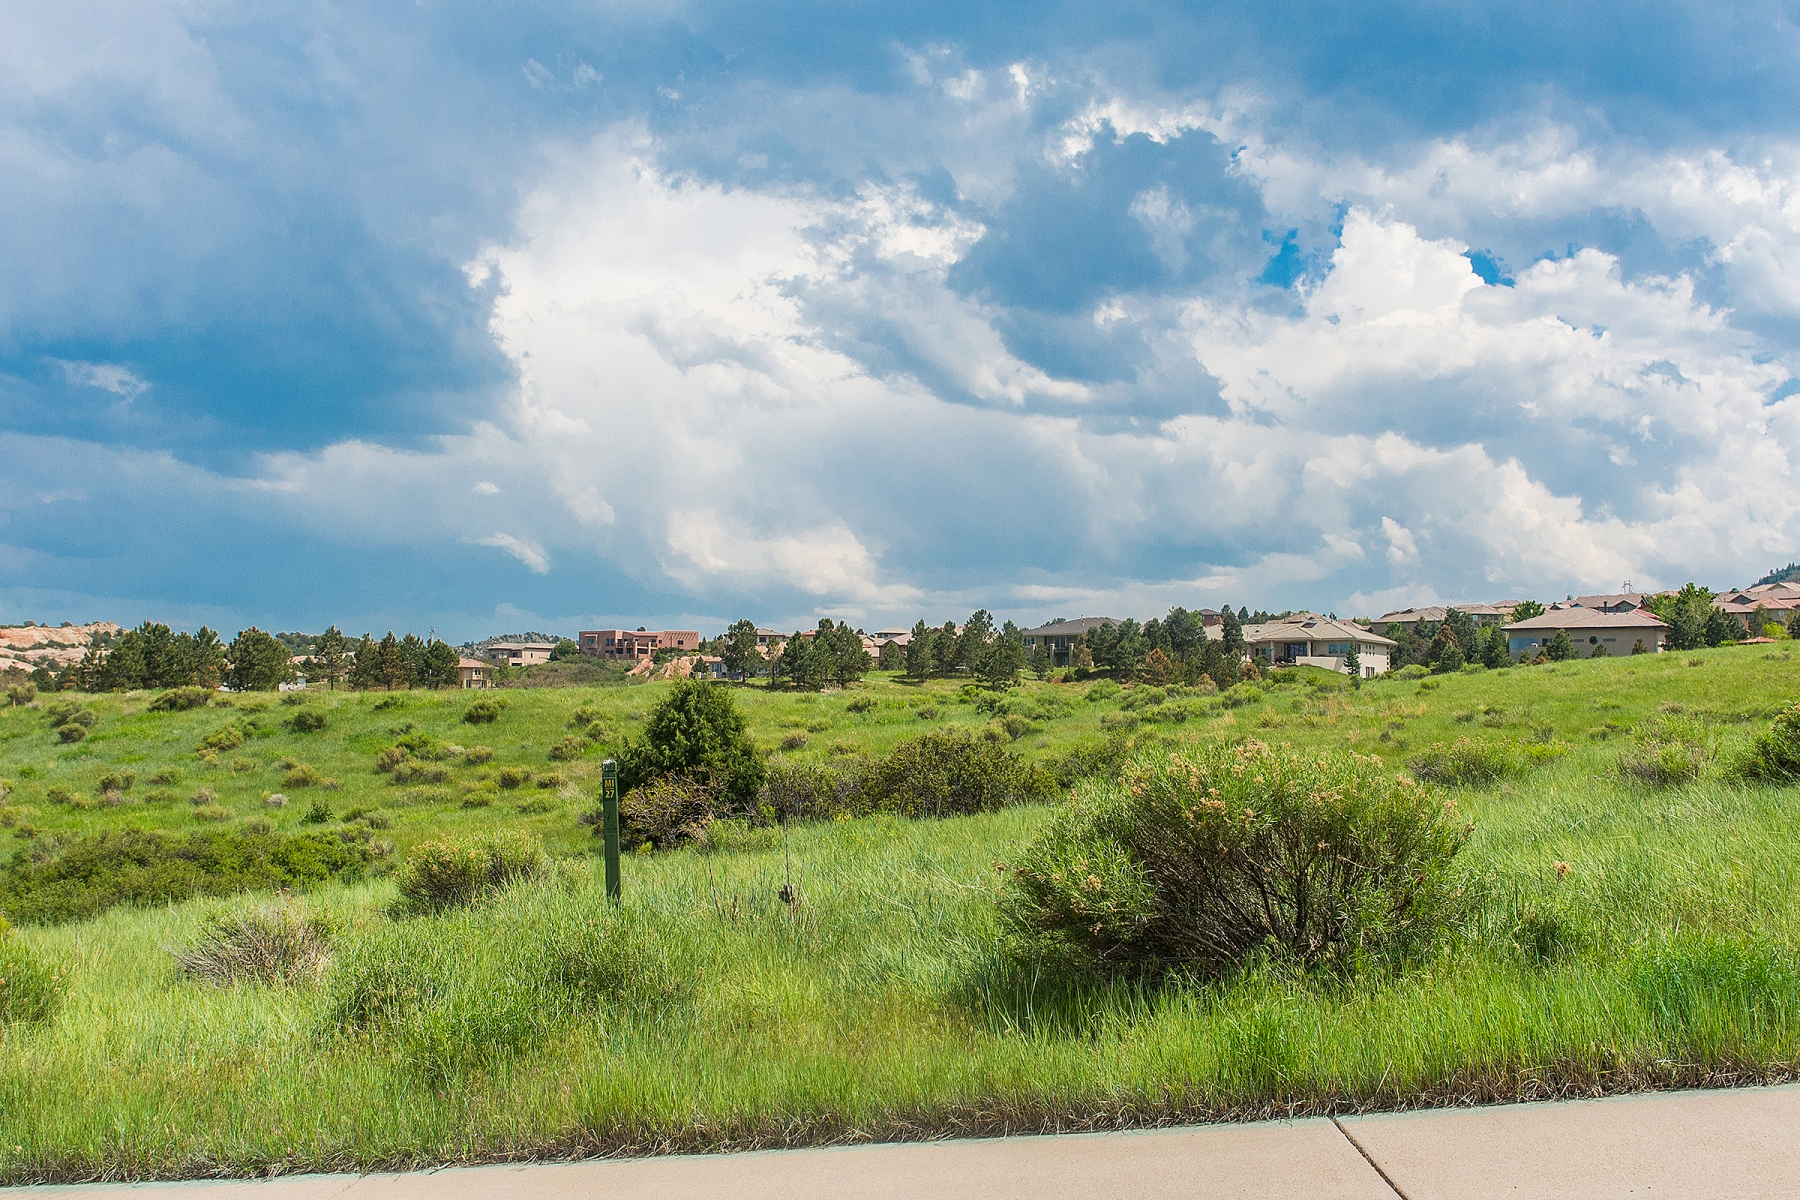 Ravenna, a private gated lifestyle community with great amenities 7725 Dante Dr Littleton, Colorado 80125 United States